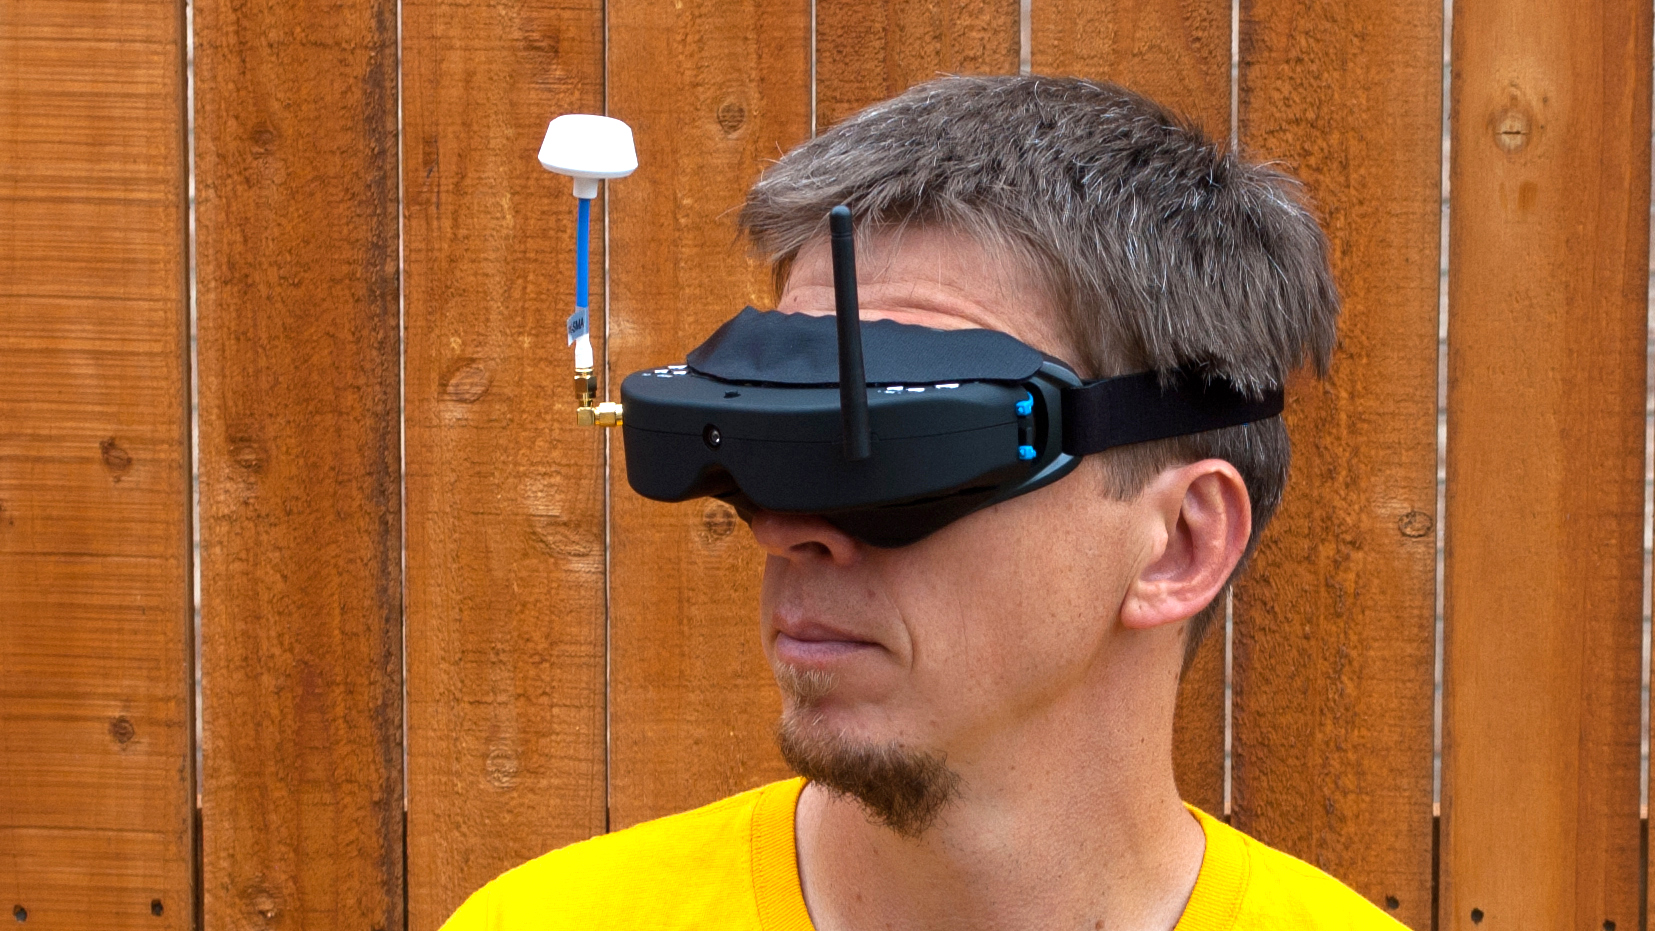 how to get into hobby rc comfort mod for fpv goggles tested